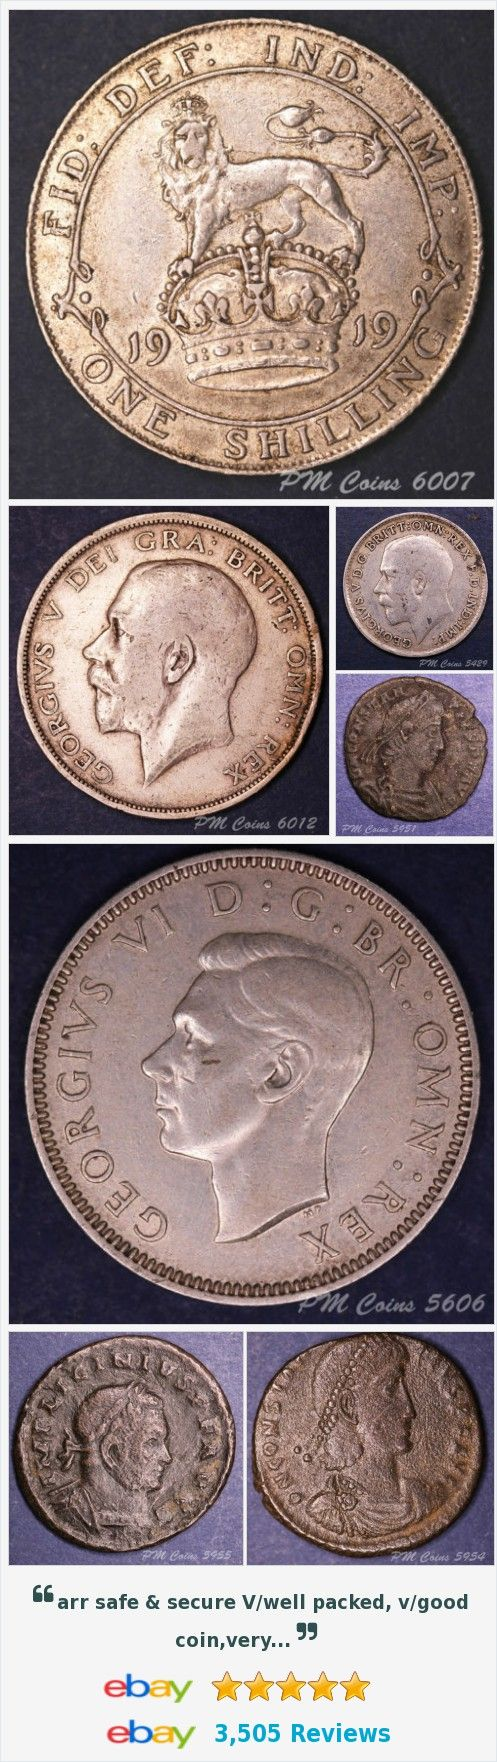 Ireland - Coins and Banknotes, UK Coins - Shillings items in PM Coin Shop store on eBay! http://stores.ebay.co.uk/PM-Coin-Shop/_i.html?rt=nc&_sid=1083015530&_trksid=p4634.c0.m14.l1513&_pgn=12